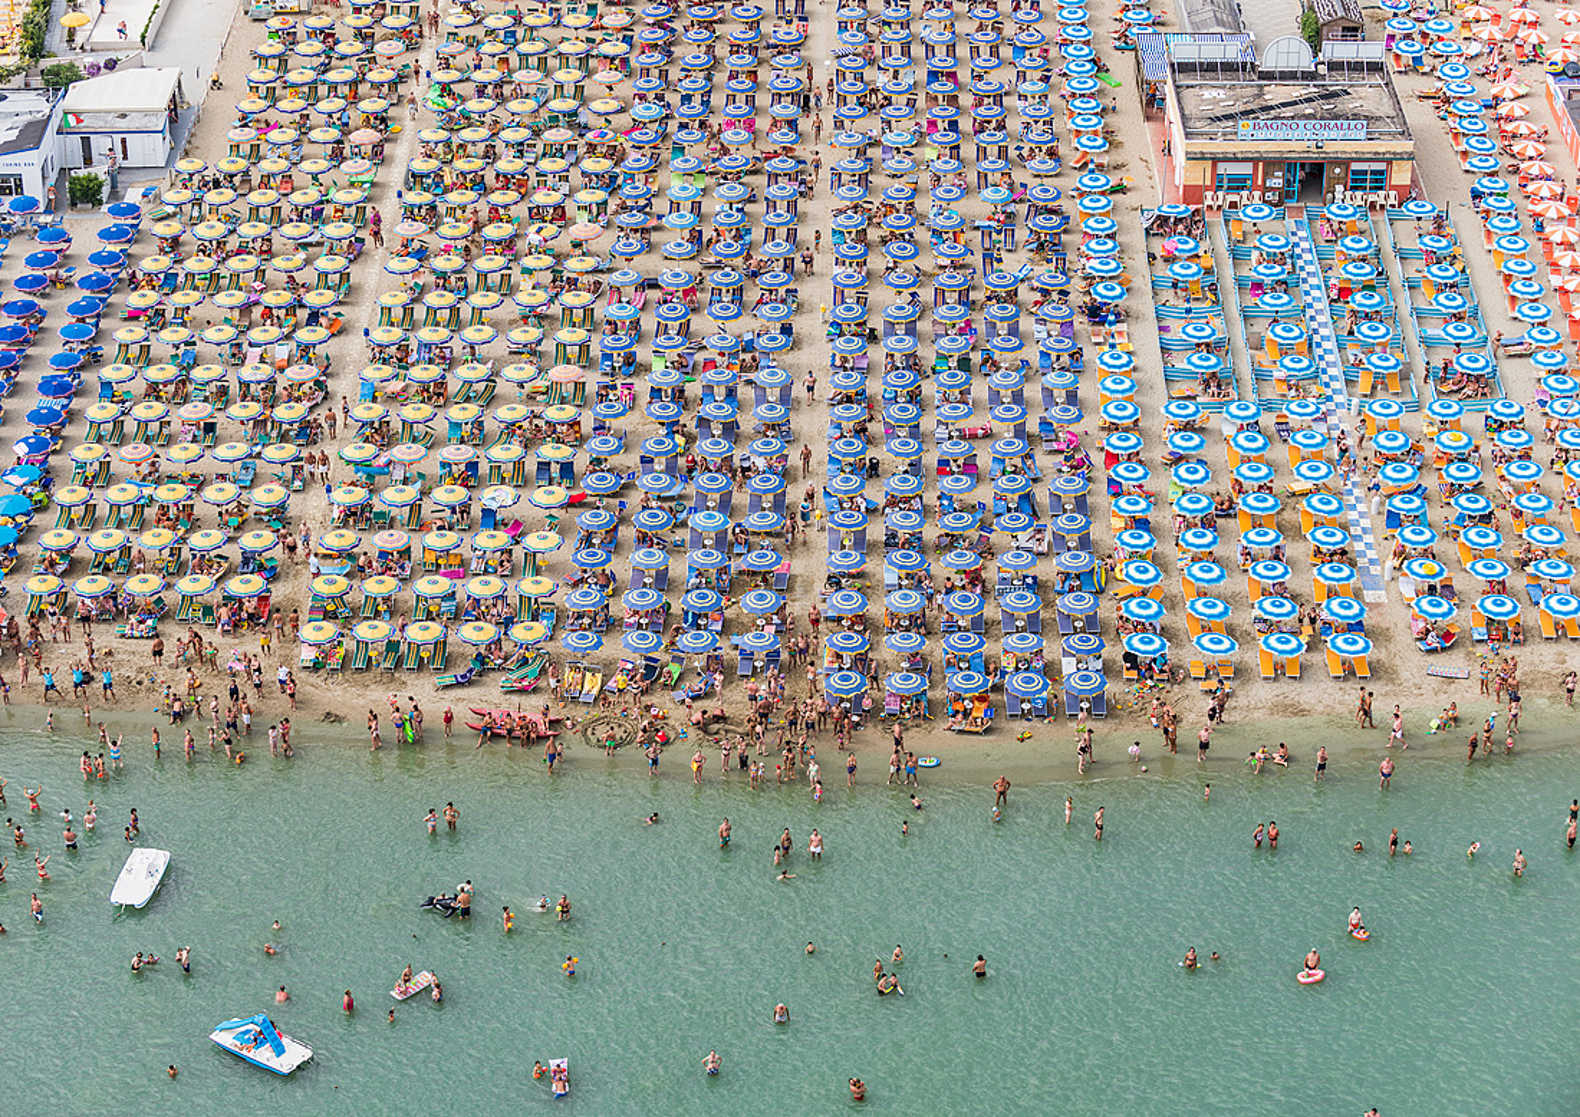 Bernhard Lang's aerial photographs give a whole new perspective on the day at the beach